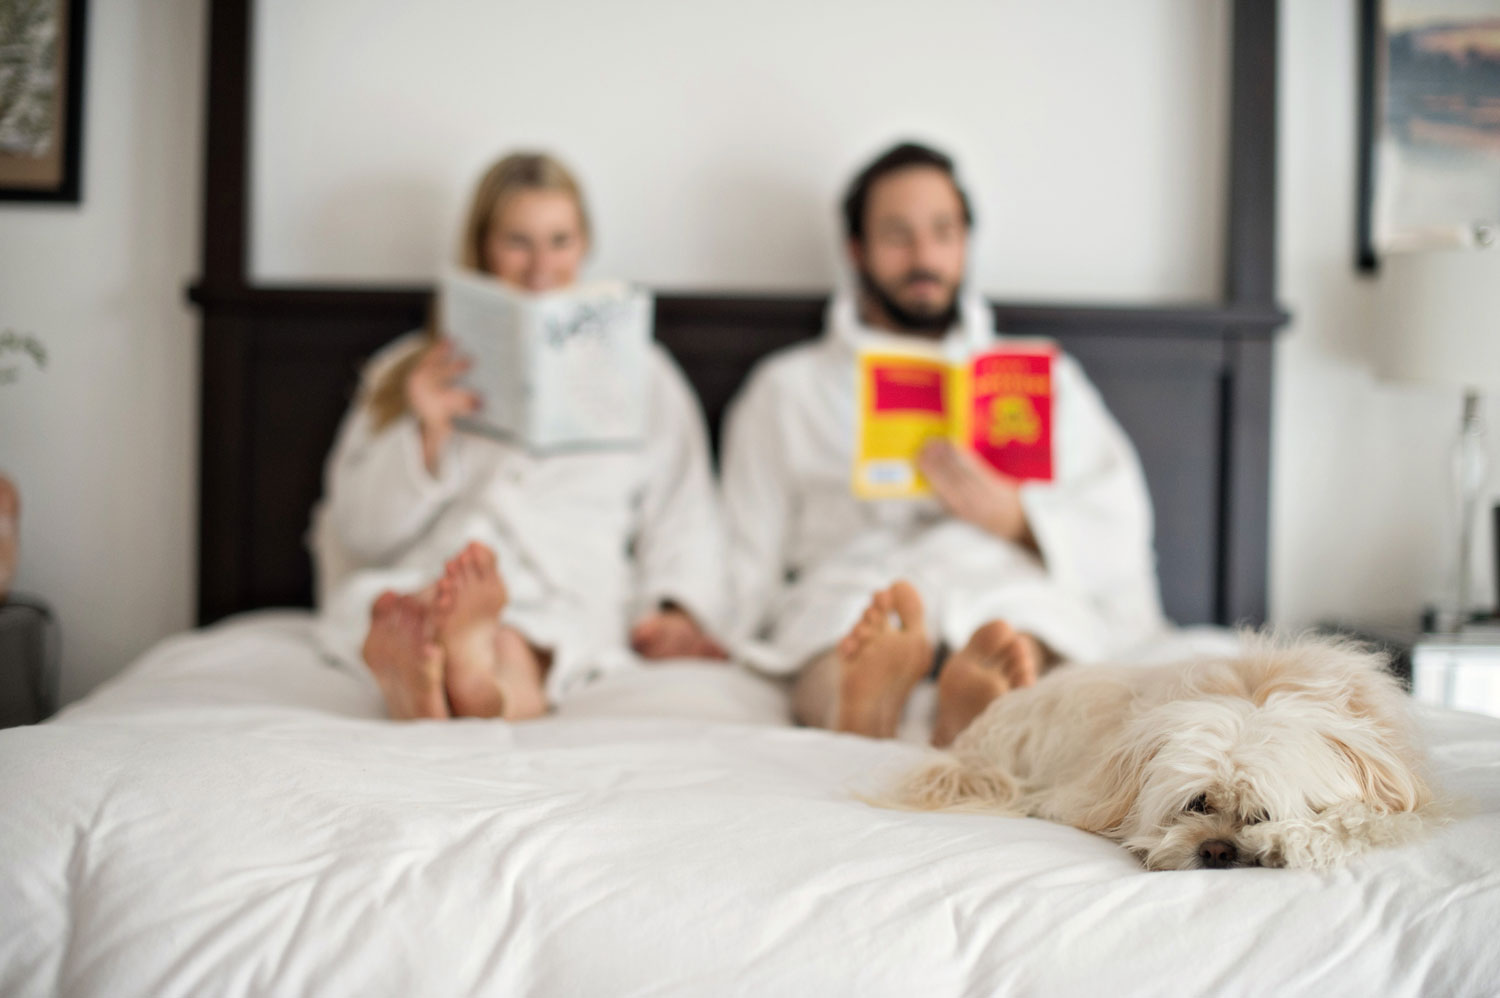 bride and groom reading with dog on bed engagement shoot bedroom ideas